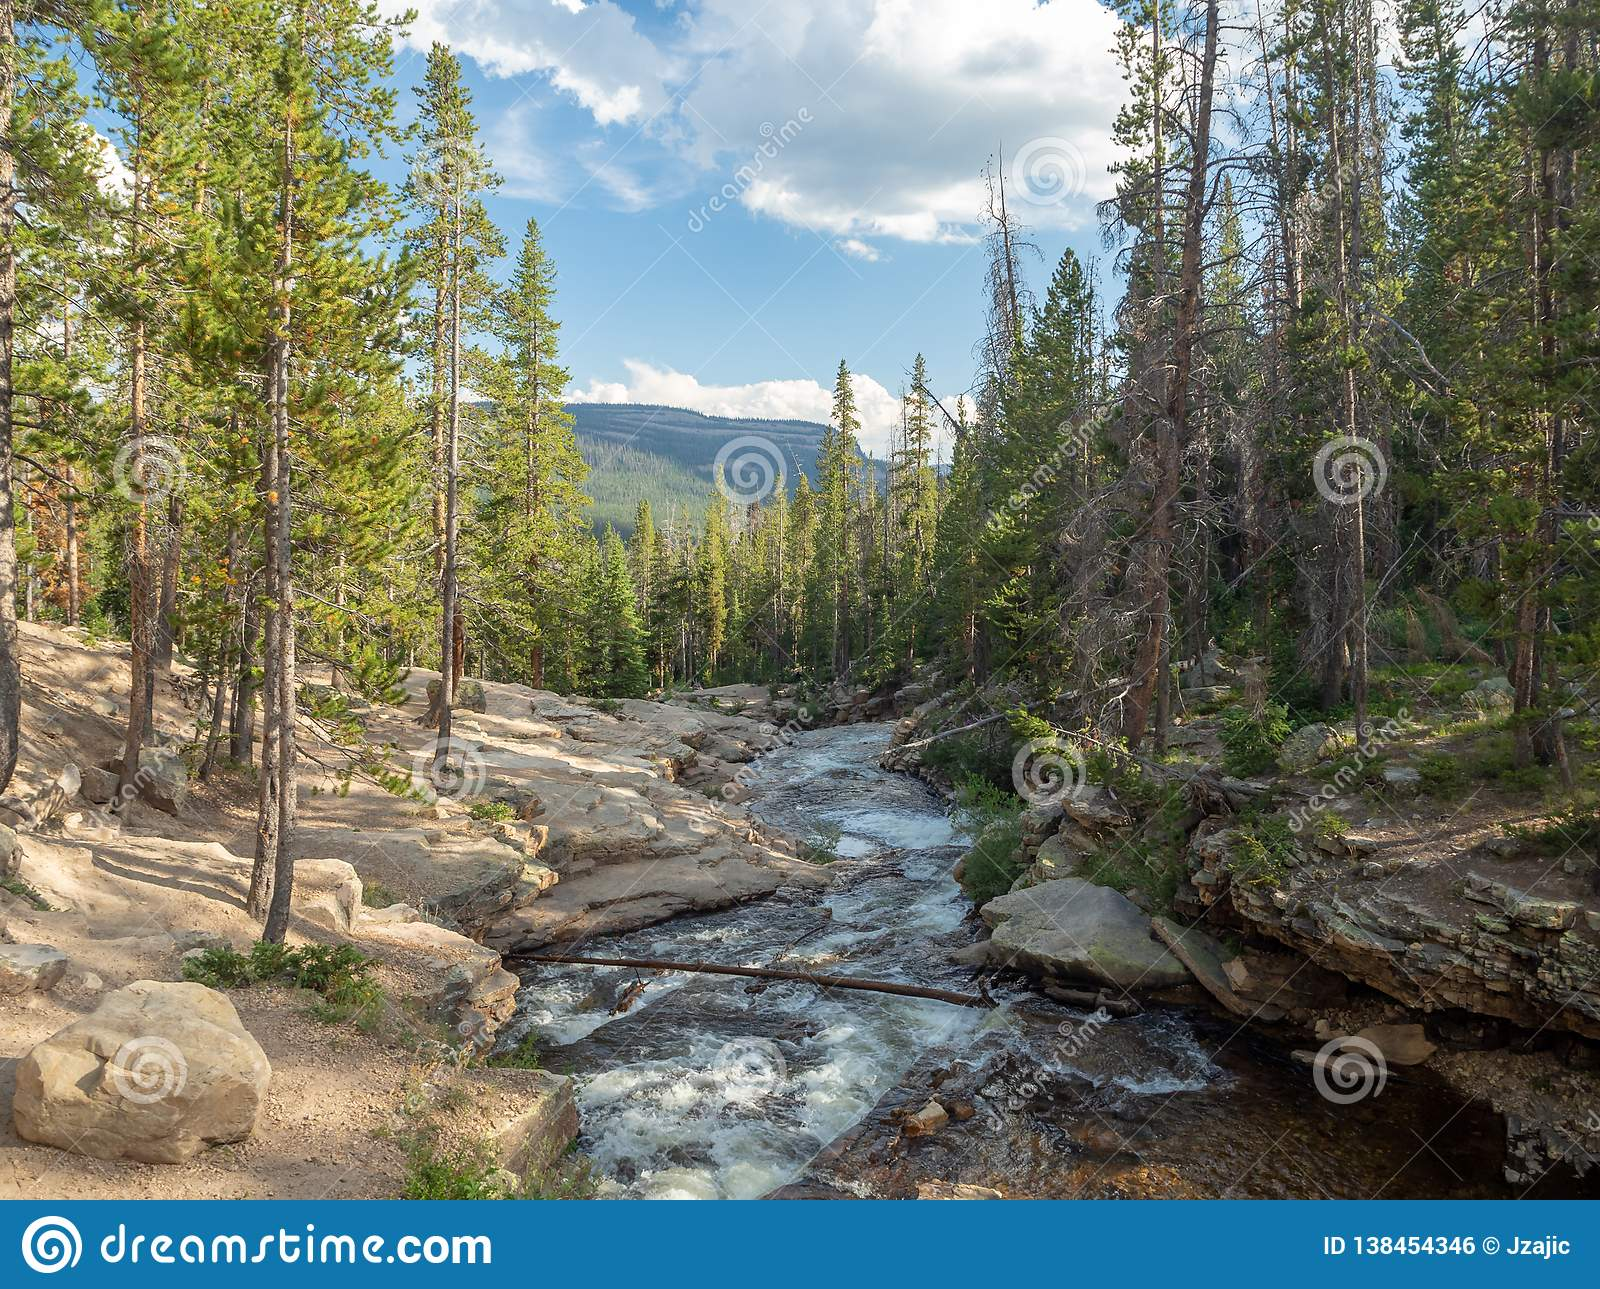 Uinta-Wasatch-Cache National Forest, Mirror Lake, Utah, United States, America, near Slat Lake and Park City